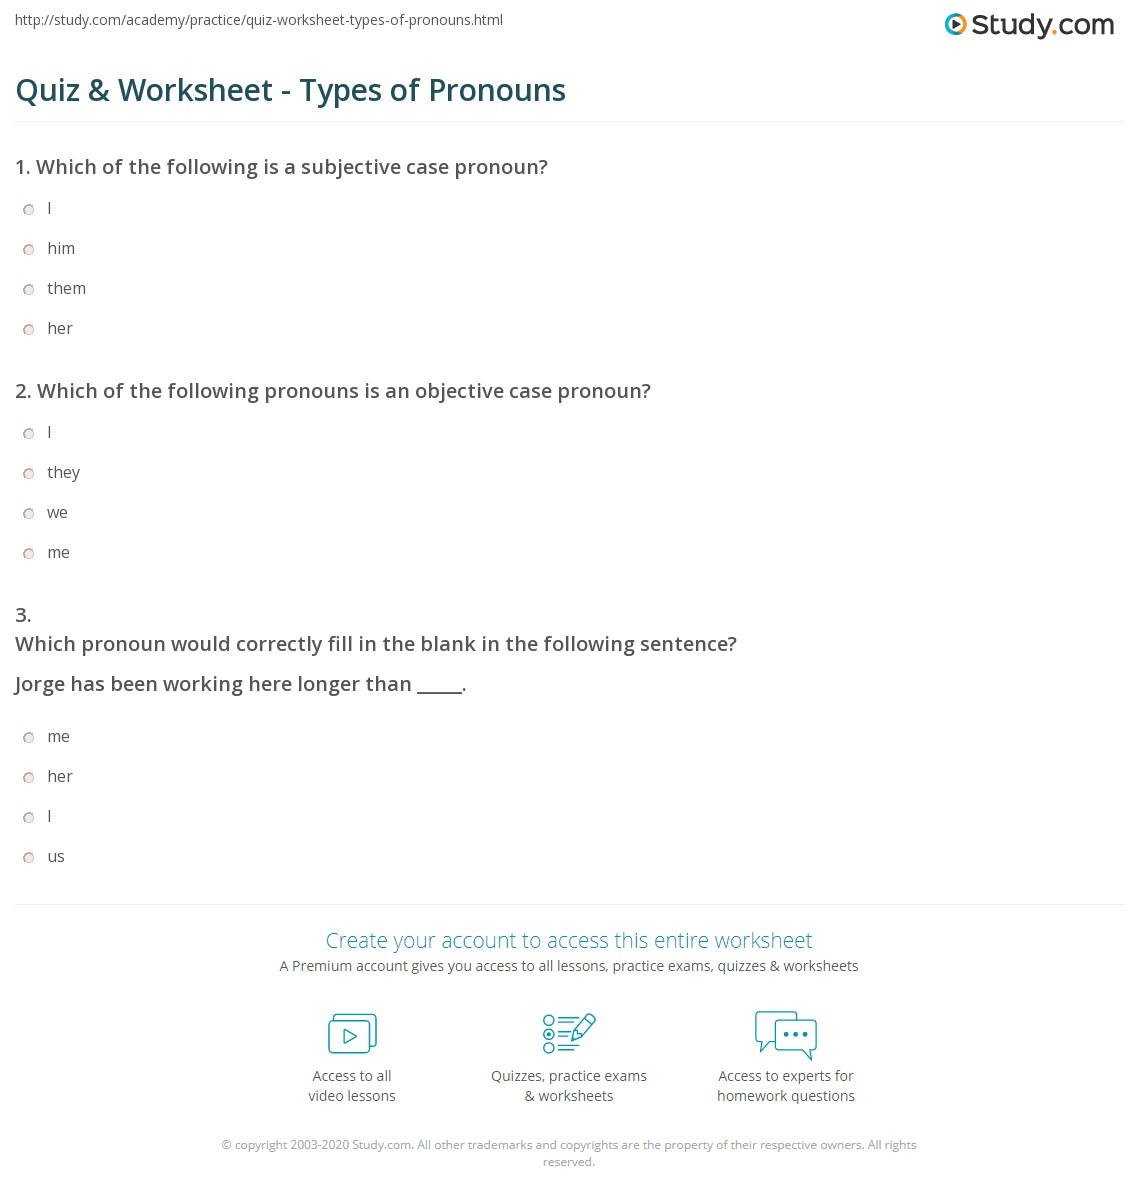 Quiz Worksheet Types of Pronouns – Pronoun Case Worksheet